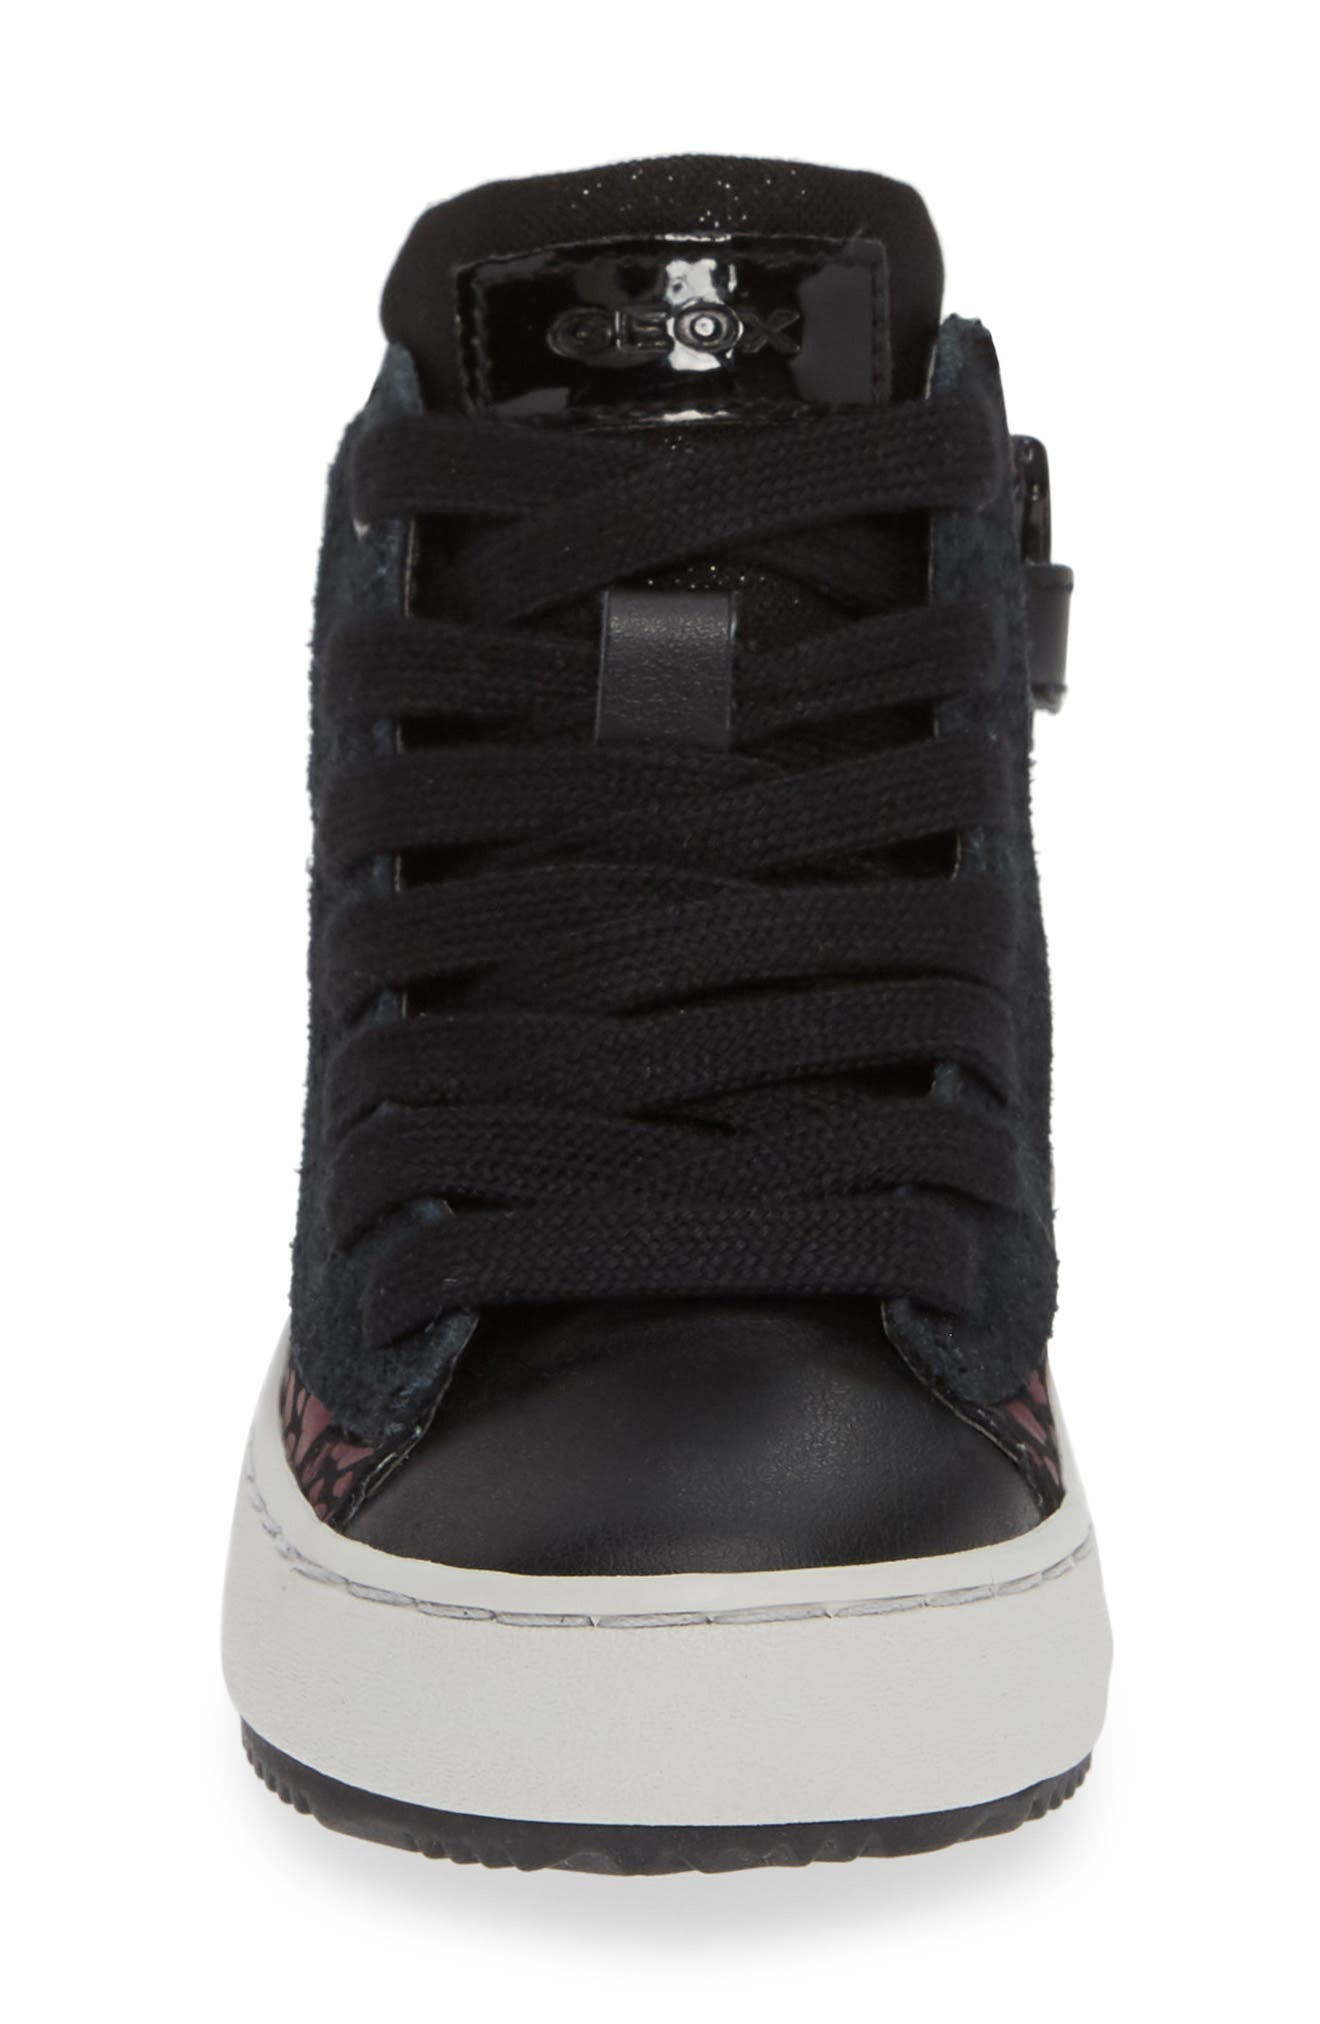 Kalispera High Top Sneaker,                             Alternate thumbnail 4, color,                             BLACK